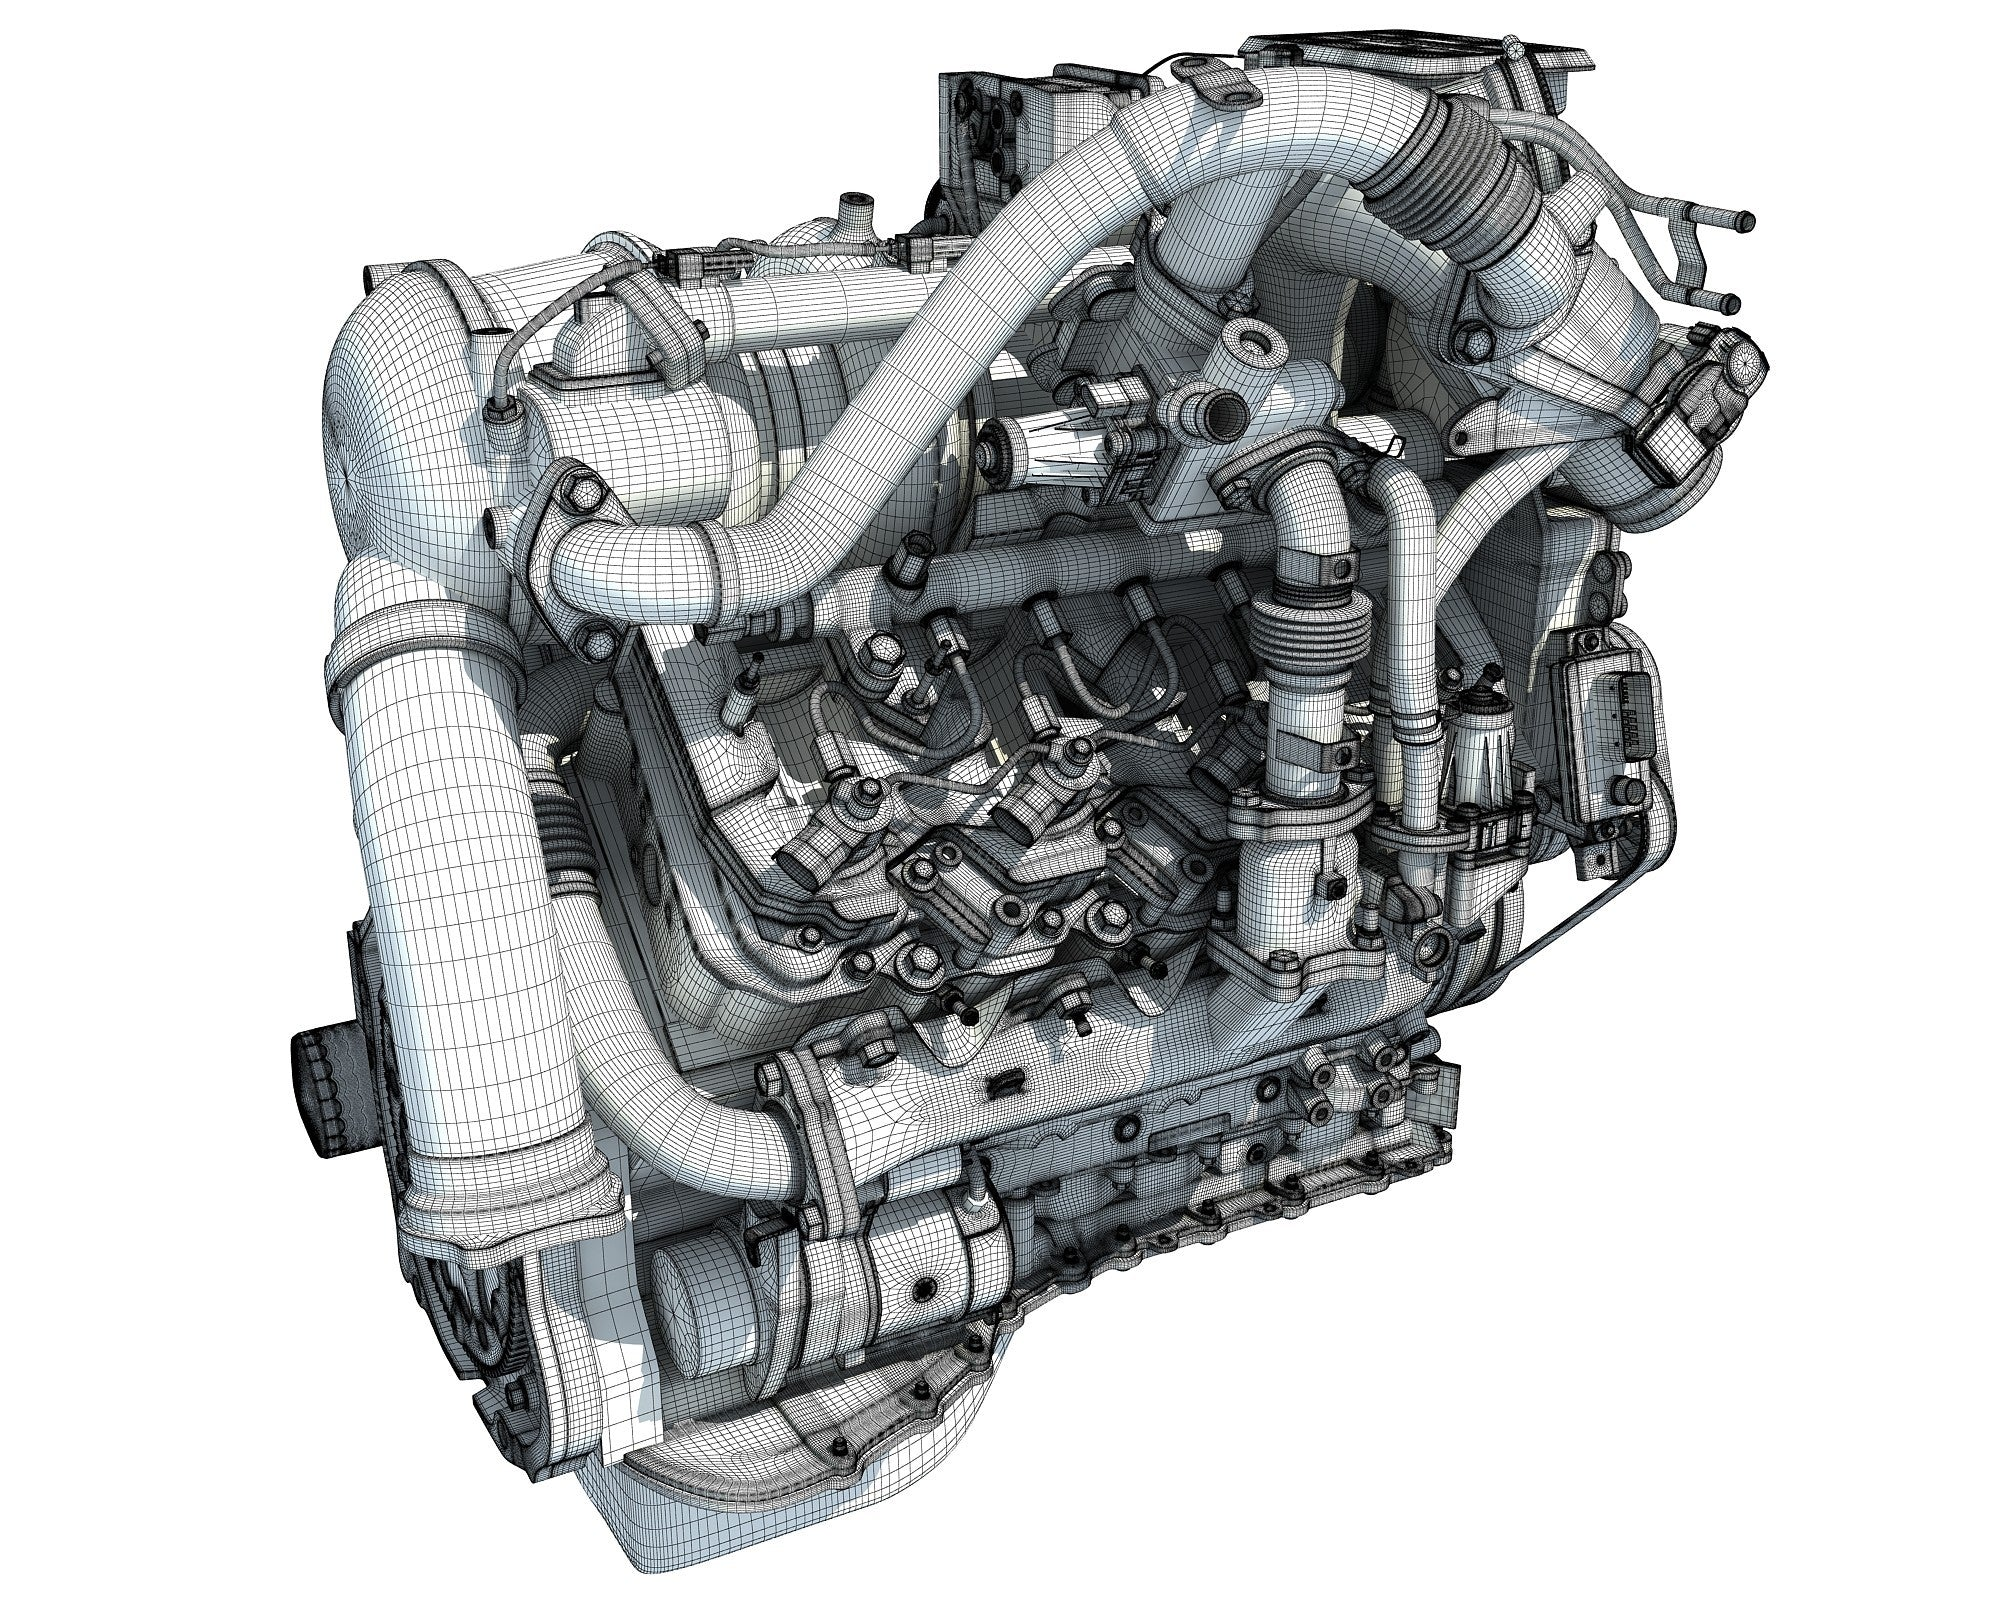 V8 Turbo Engine Model